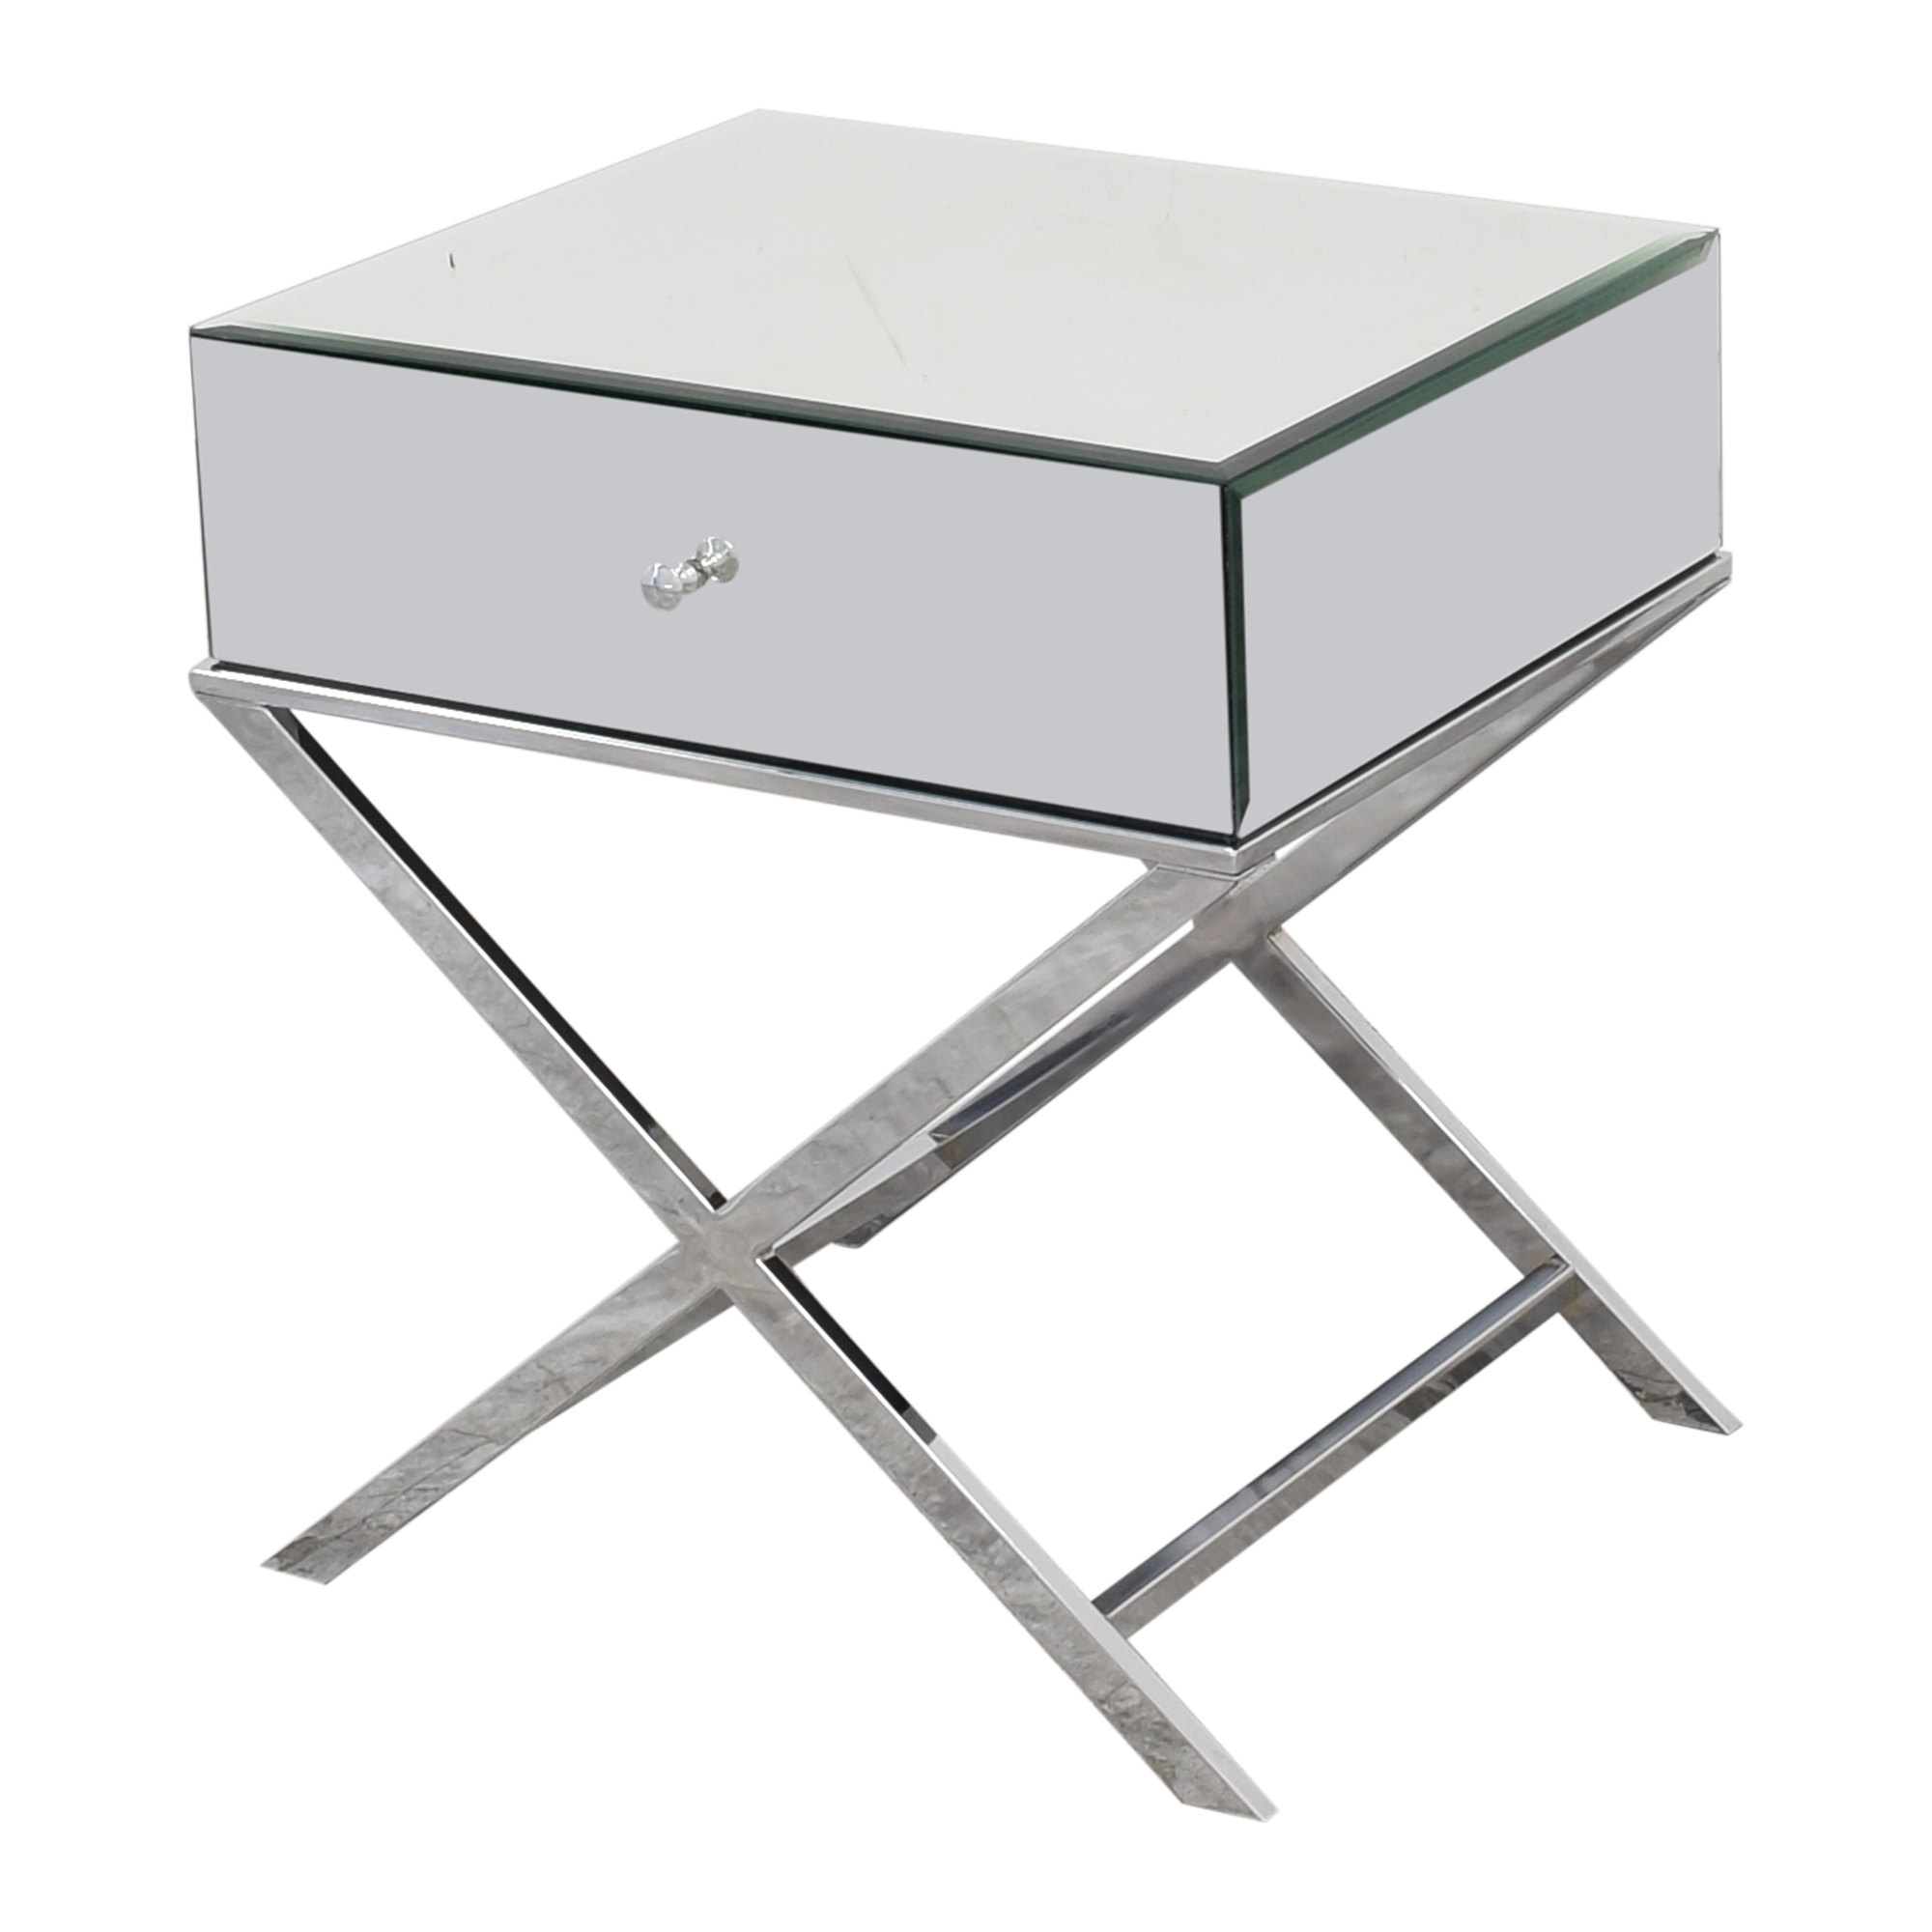 buy Wayfair Wayfair Desidério End Table With Storage online